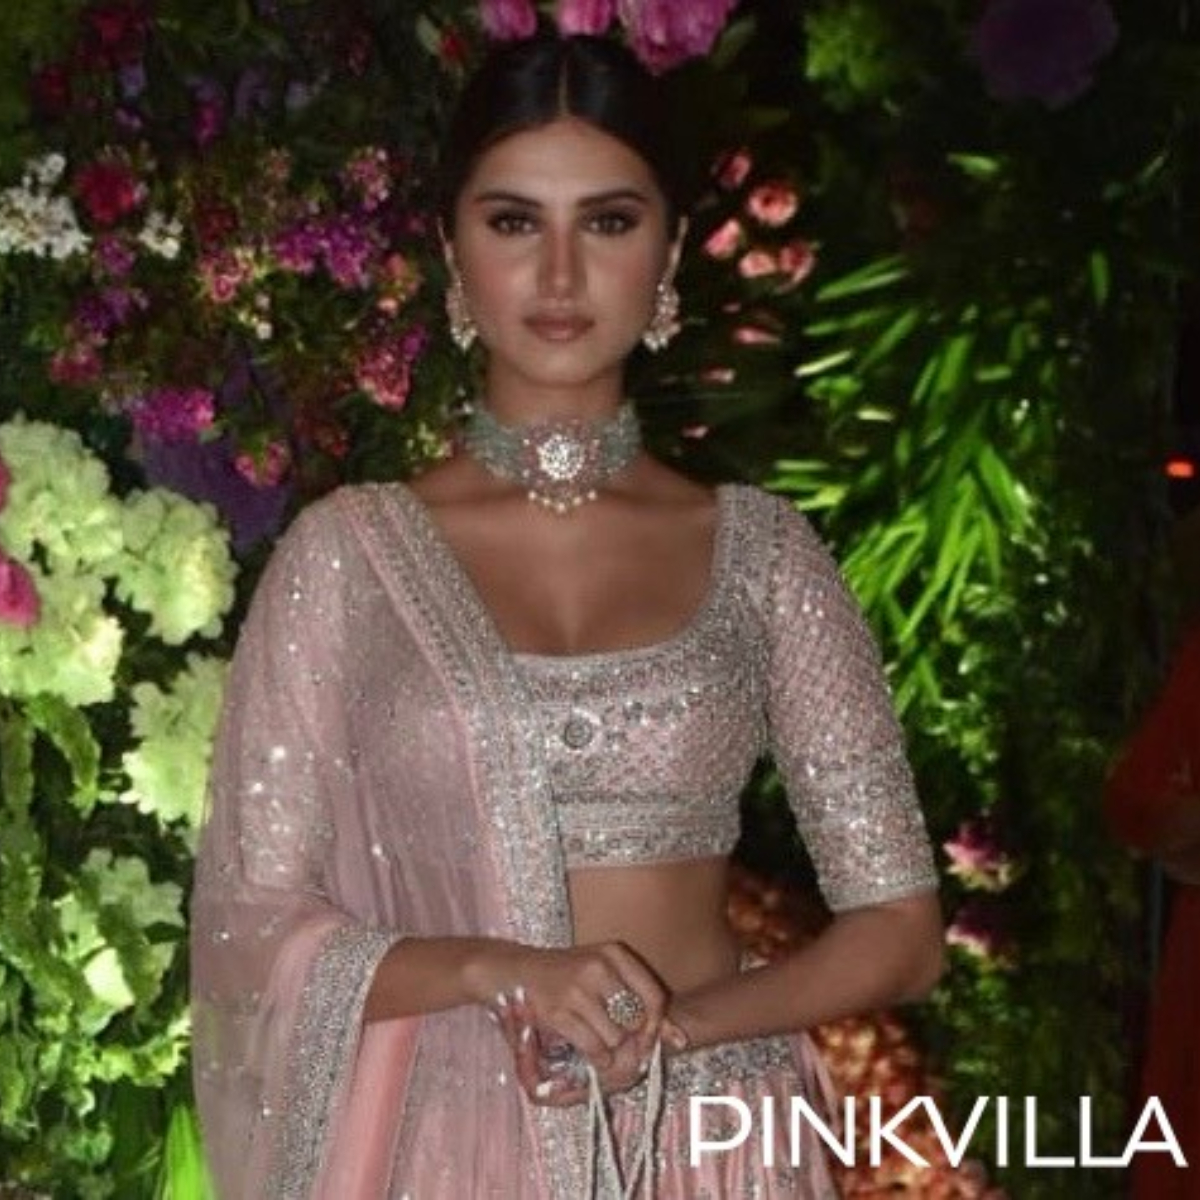 PHOTOS: Tara Sutaria dazzles in a pink shimmery traditional outfit at Armaan Jain's wedding